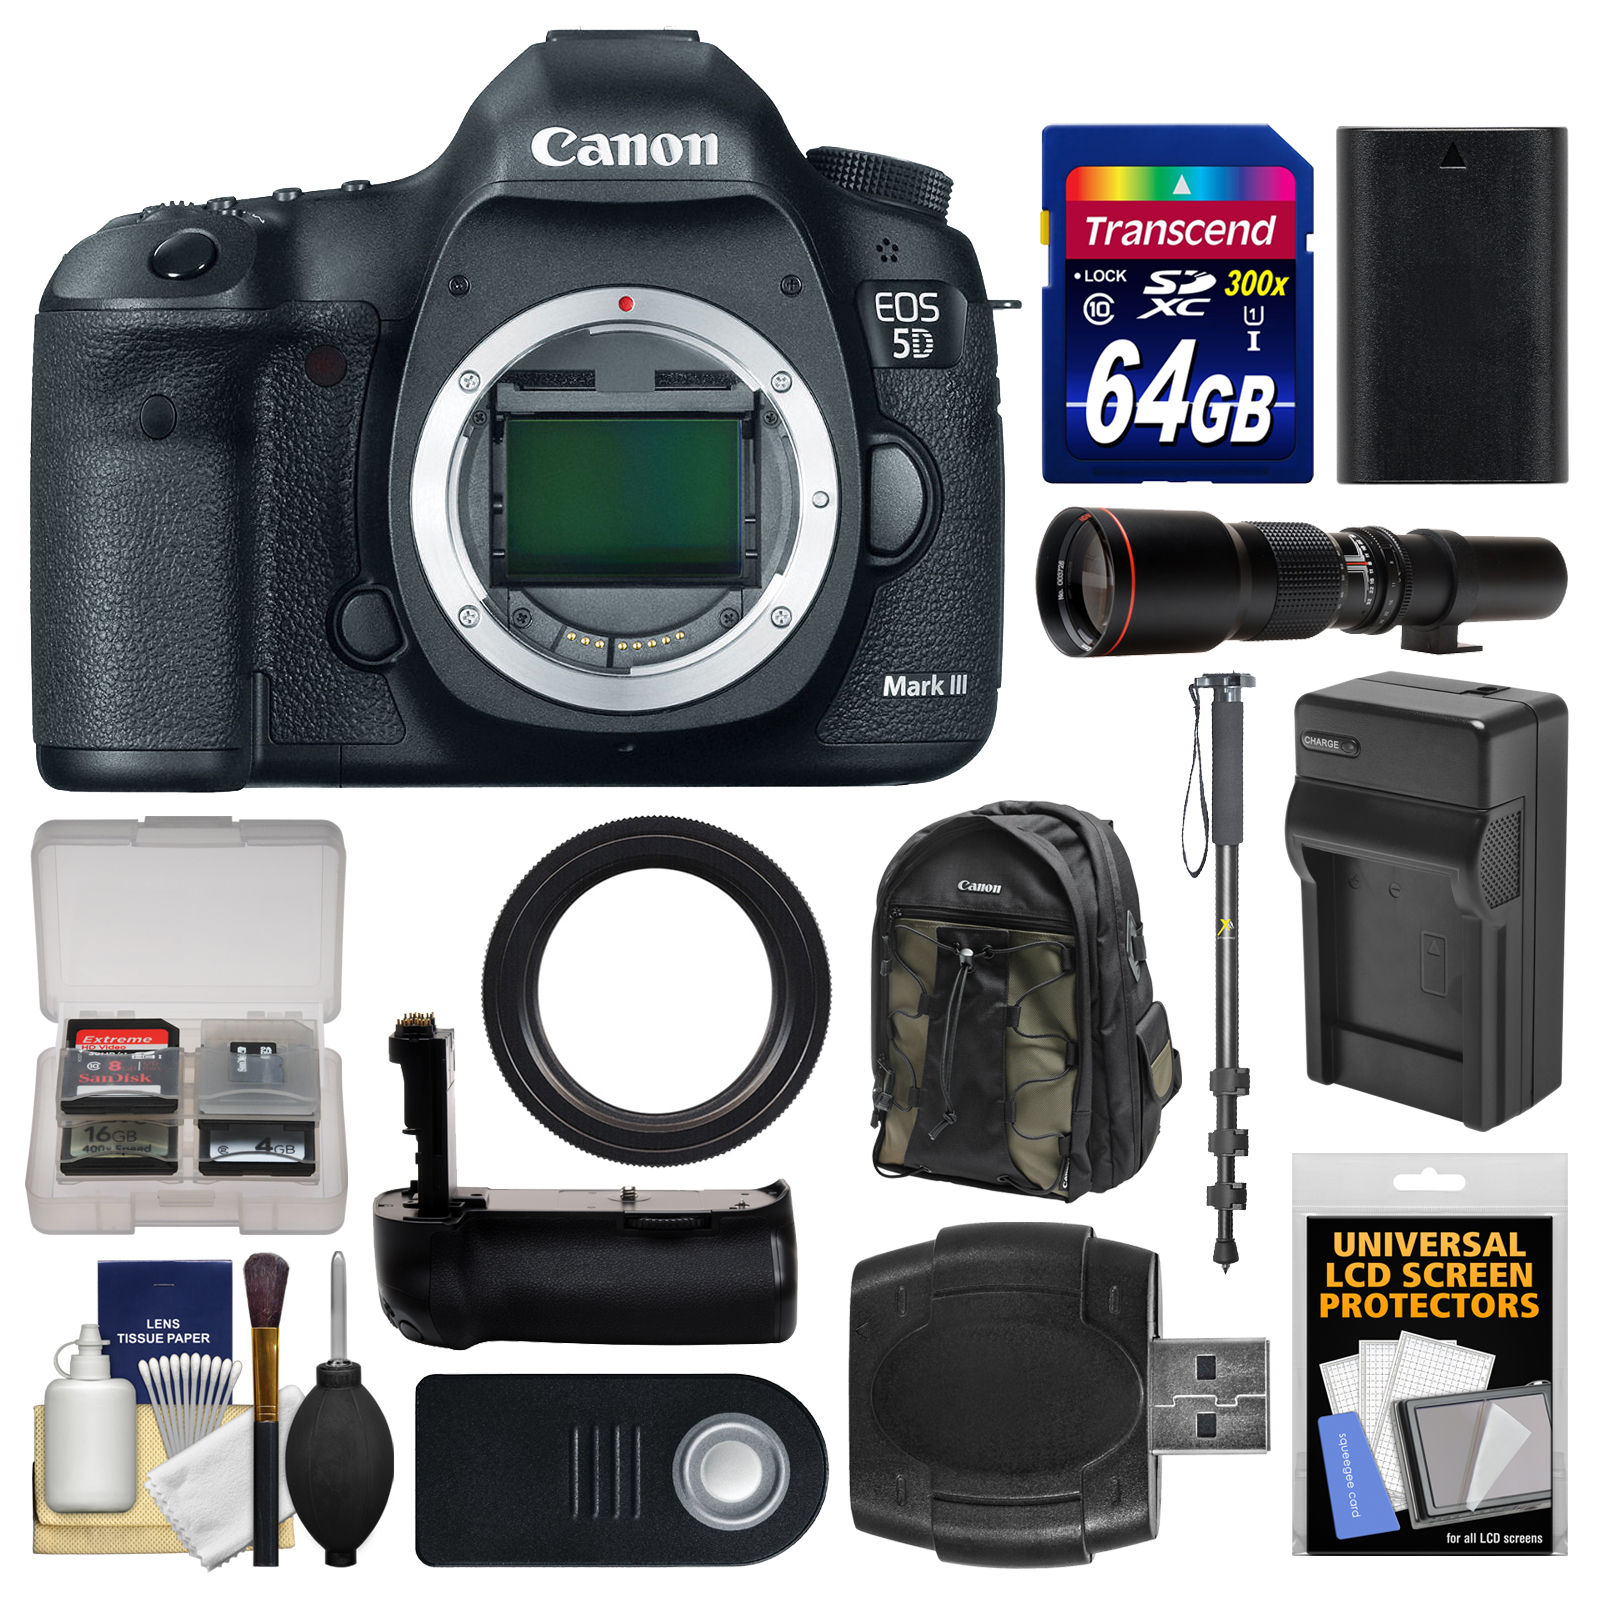 Canon EOS 5D Mark III Digital SLR Camera Body with 500mm Telephoto Lens + 64GB Card + Backpack + Battery & Charger +... by Canon